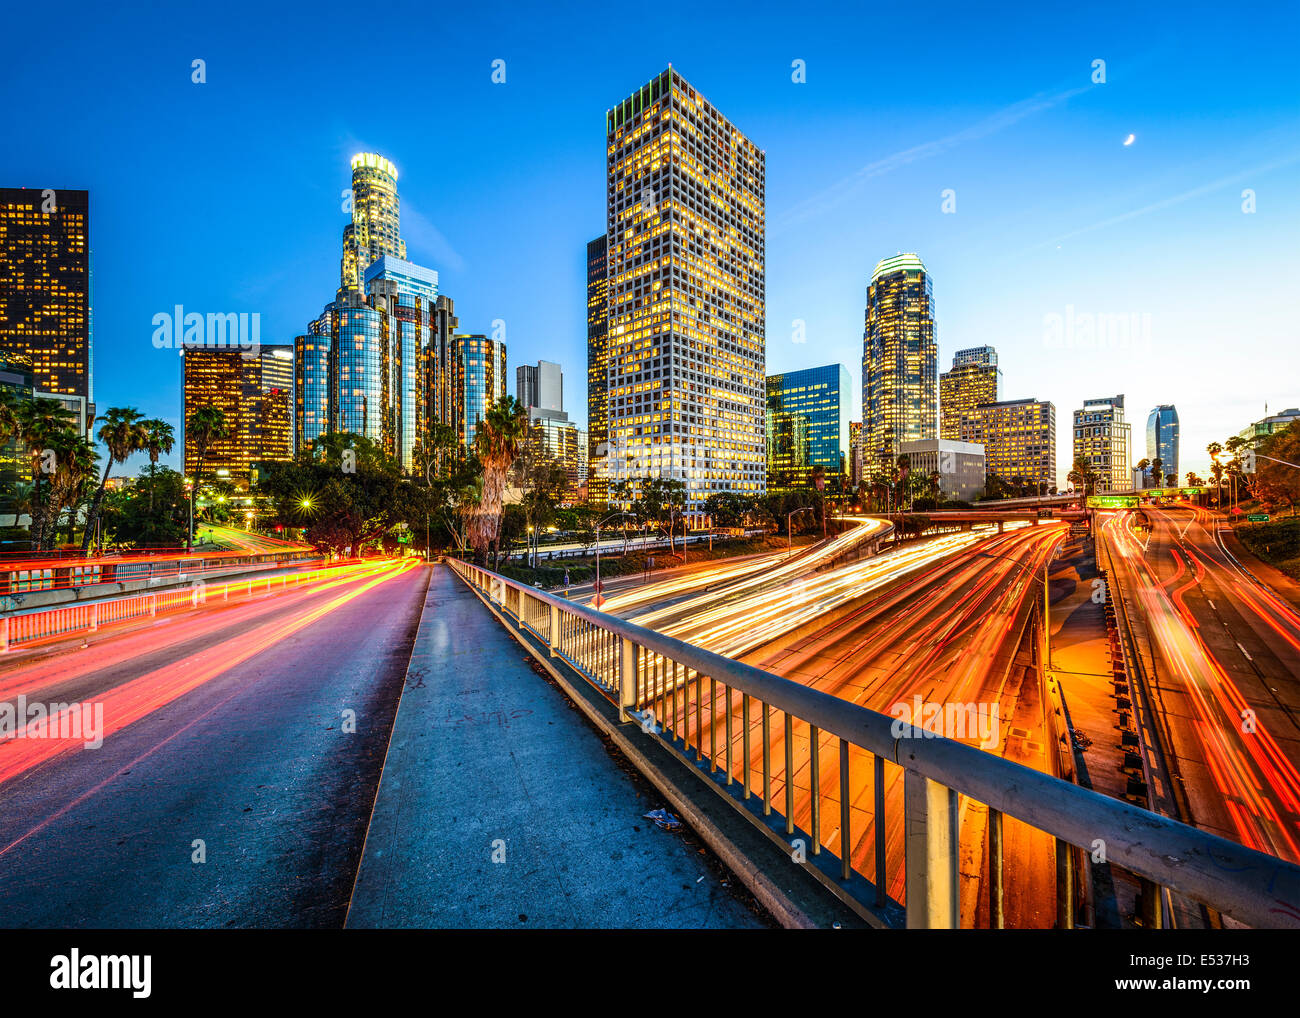 Los Angeles, California, USA downtown skyline at night. Stock Foto